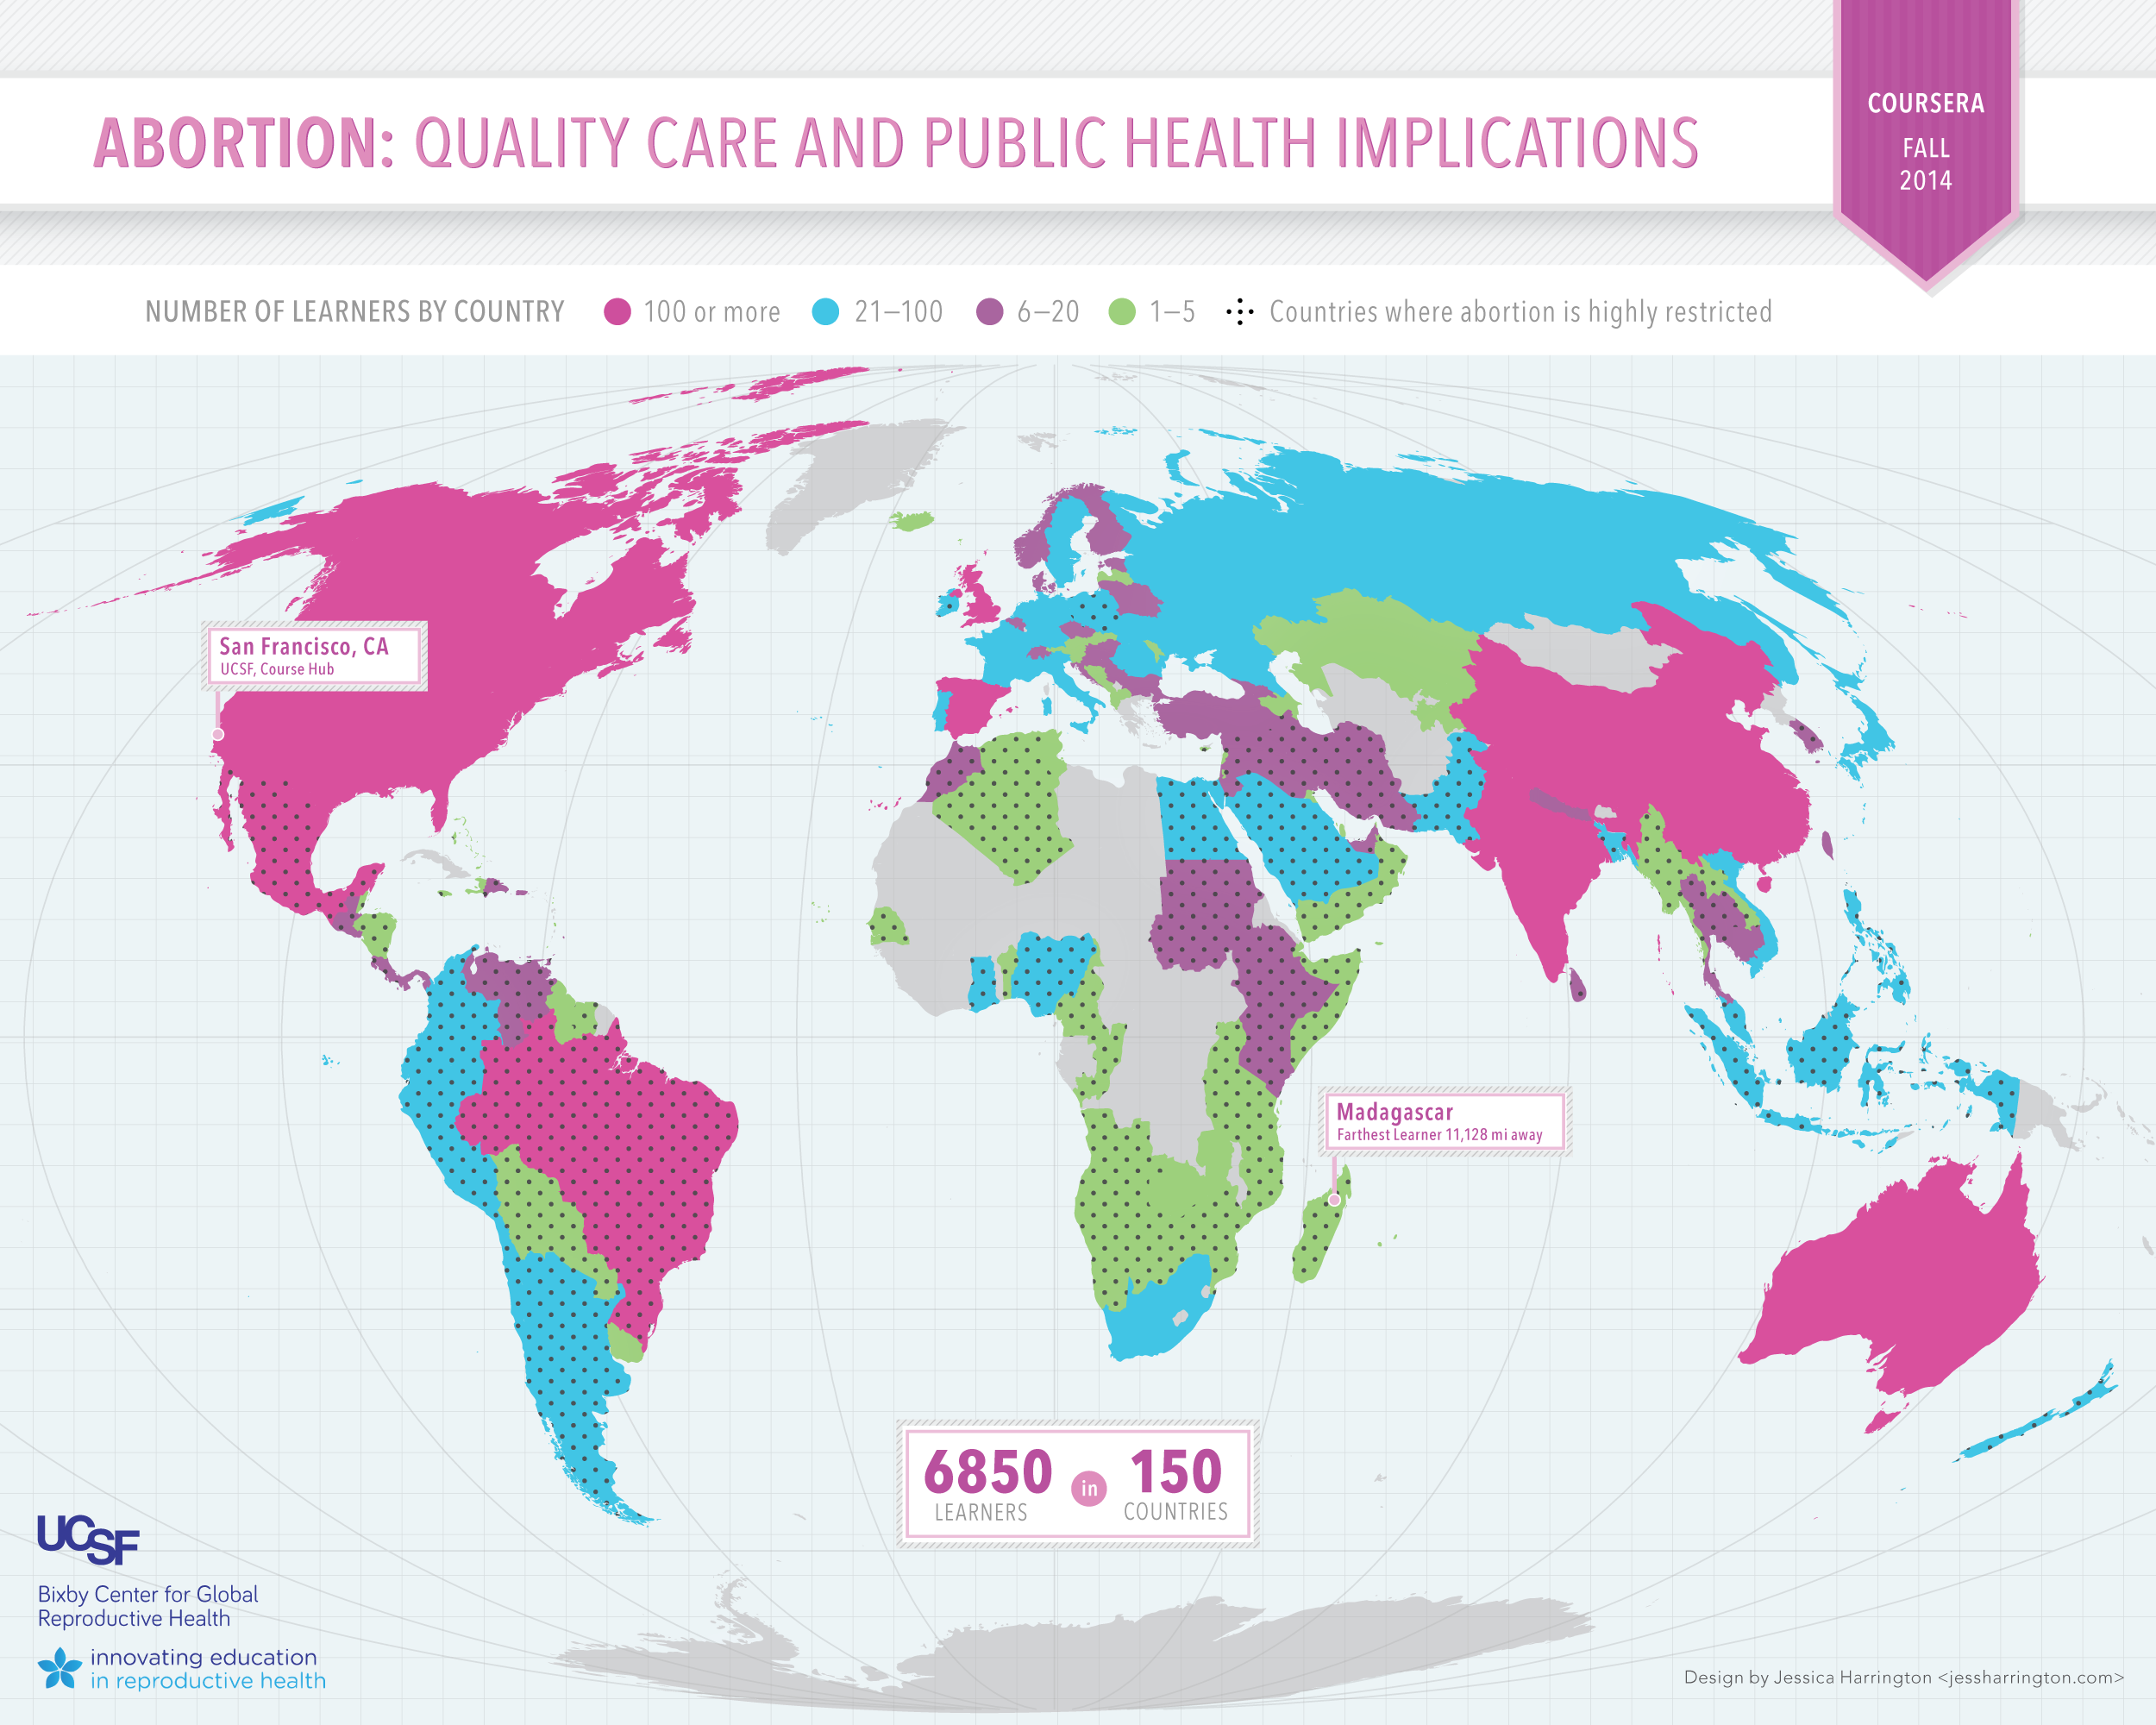 Coursera 2014 Map Innovating Education in Reproductive Health